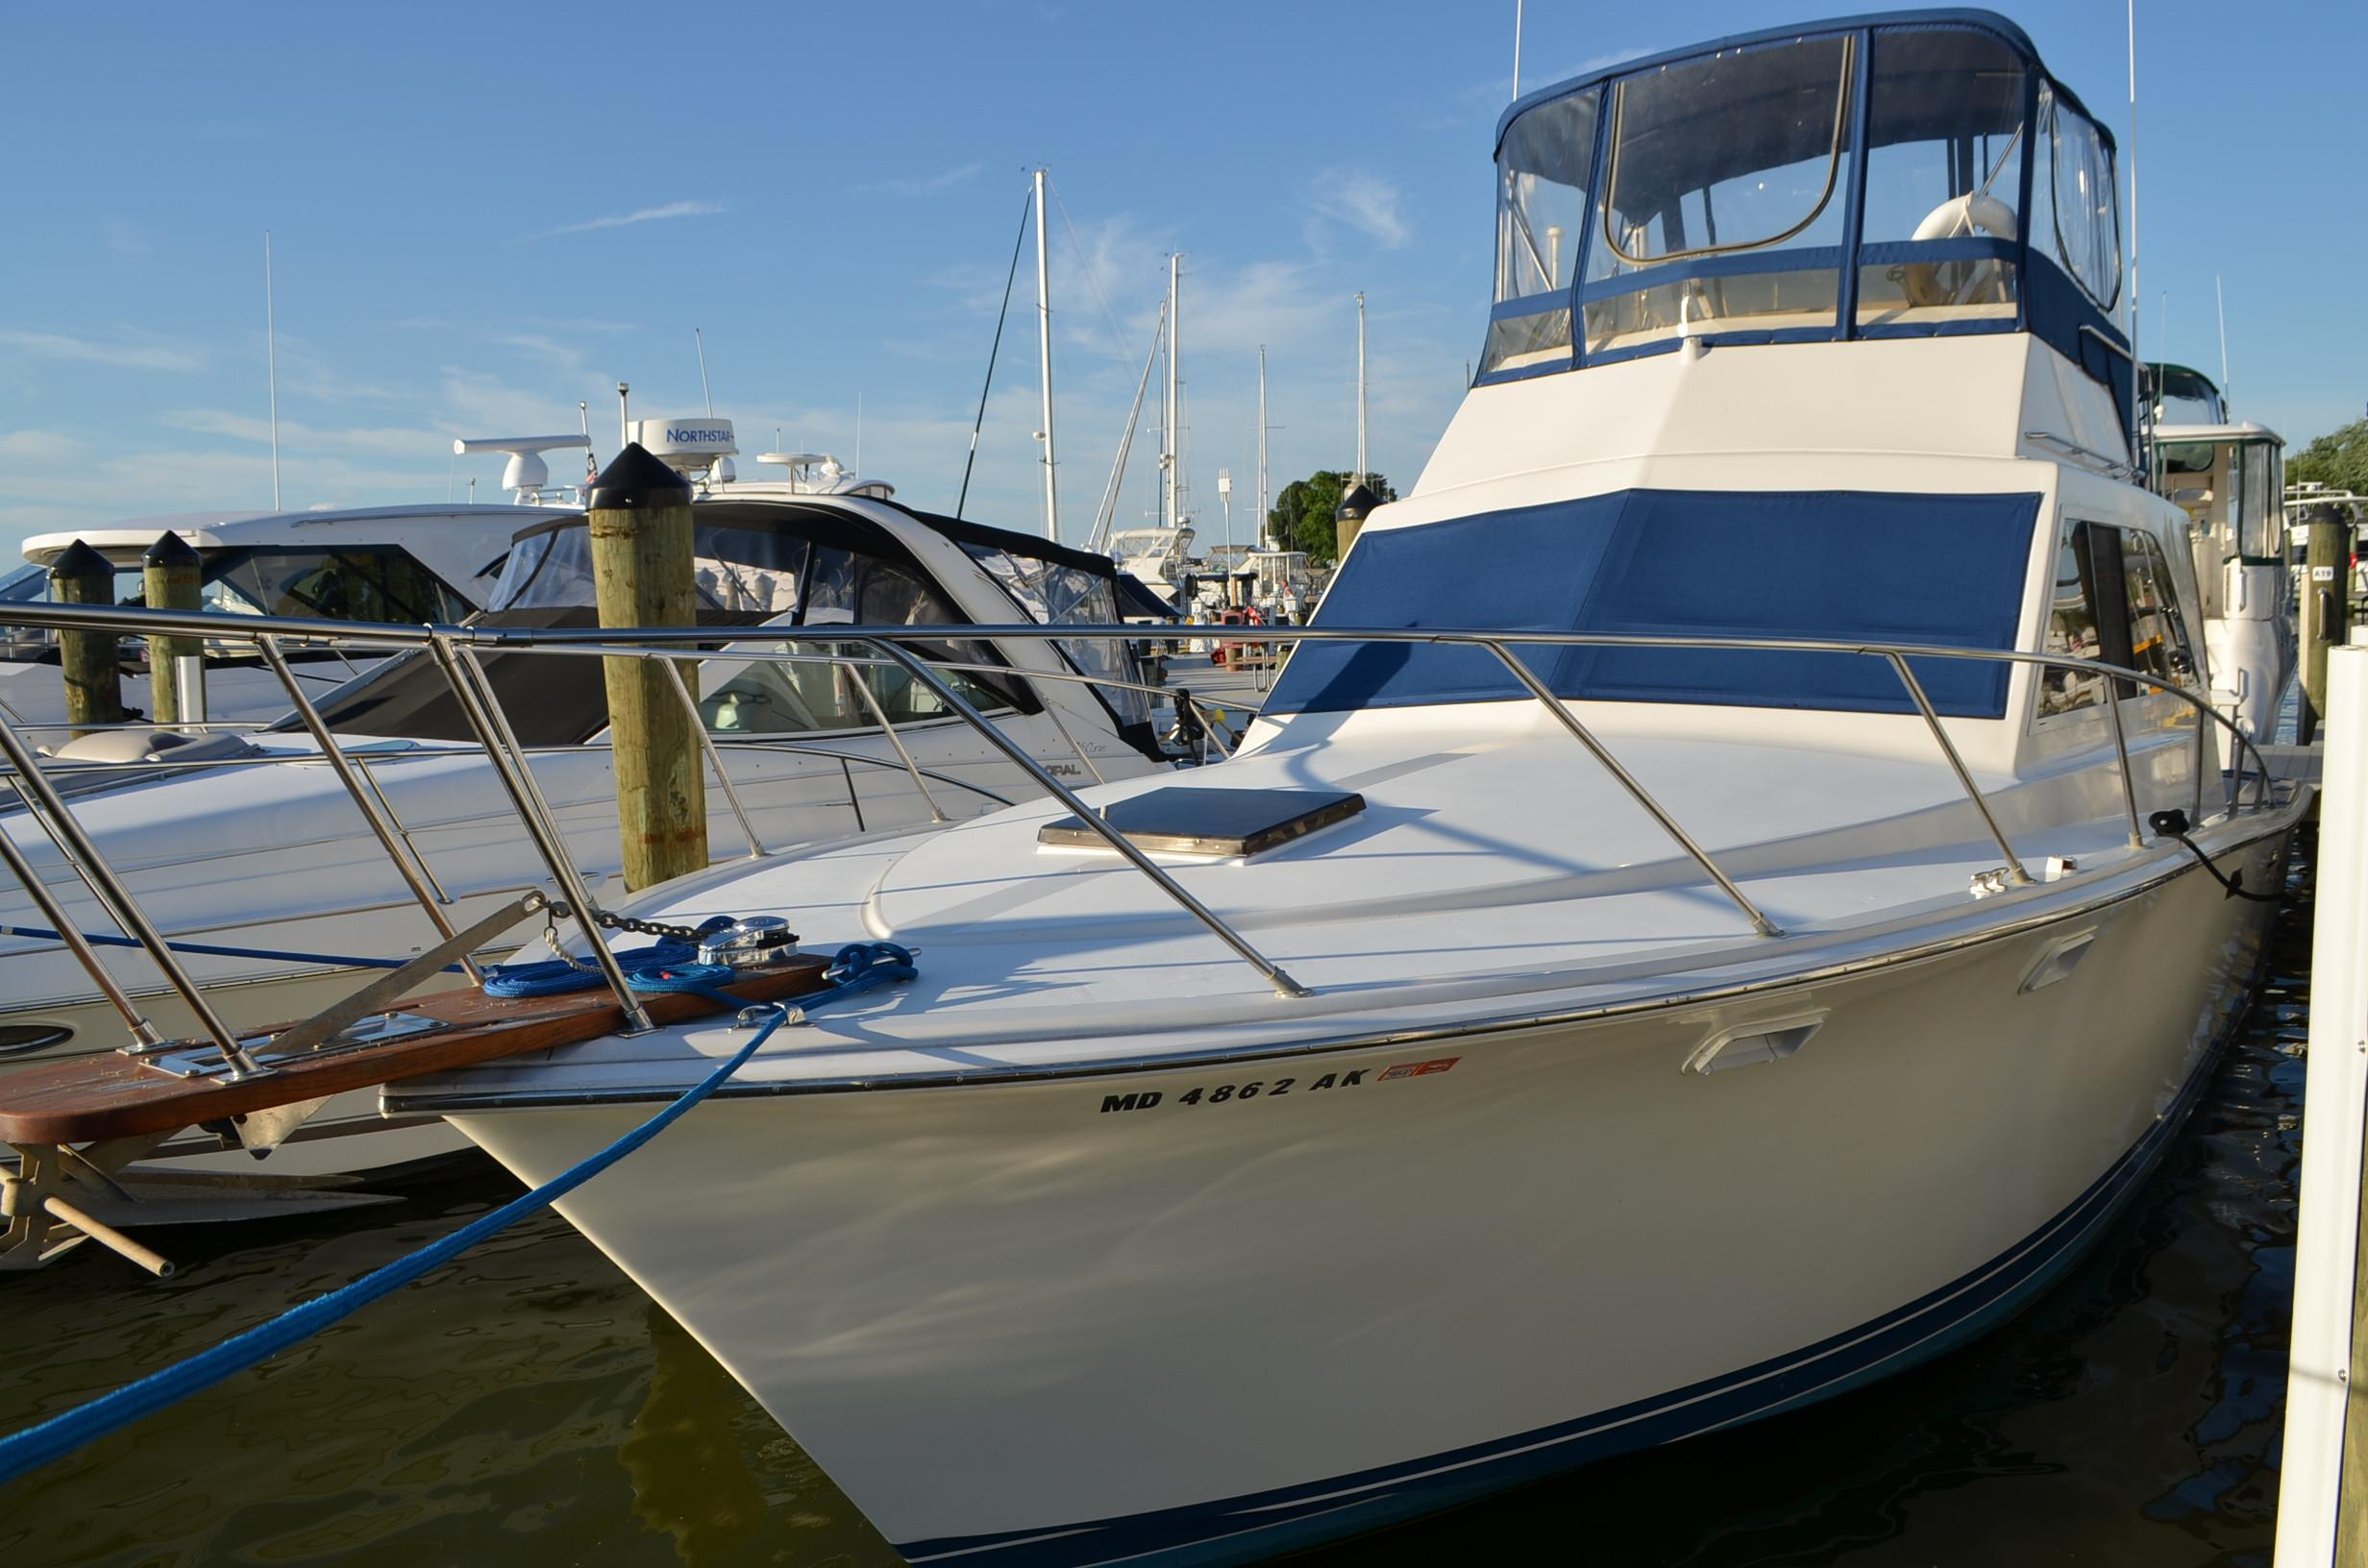 Pacemaker new and used boats for sale in md for Used fishing boats for sale in md